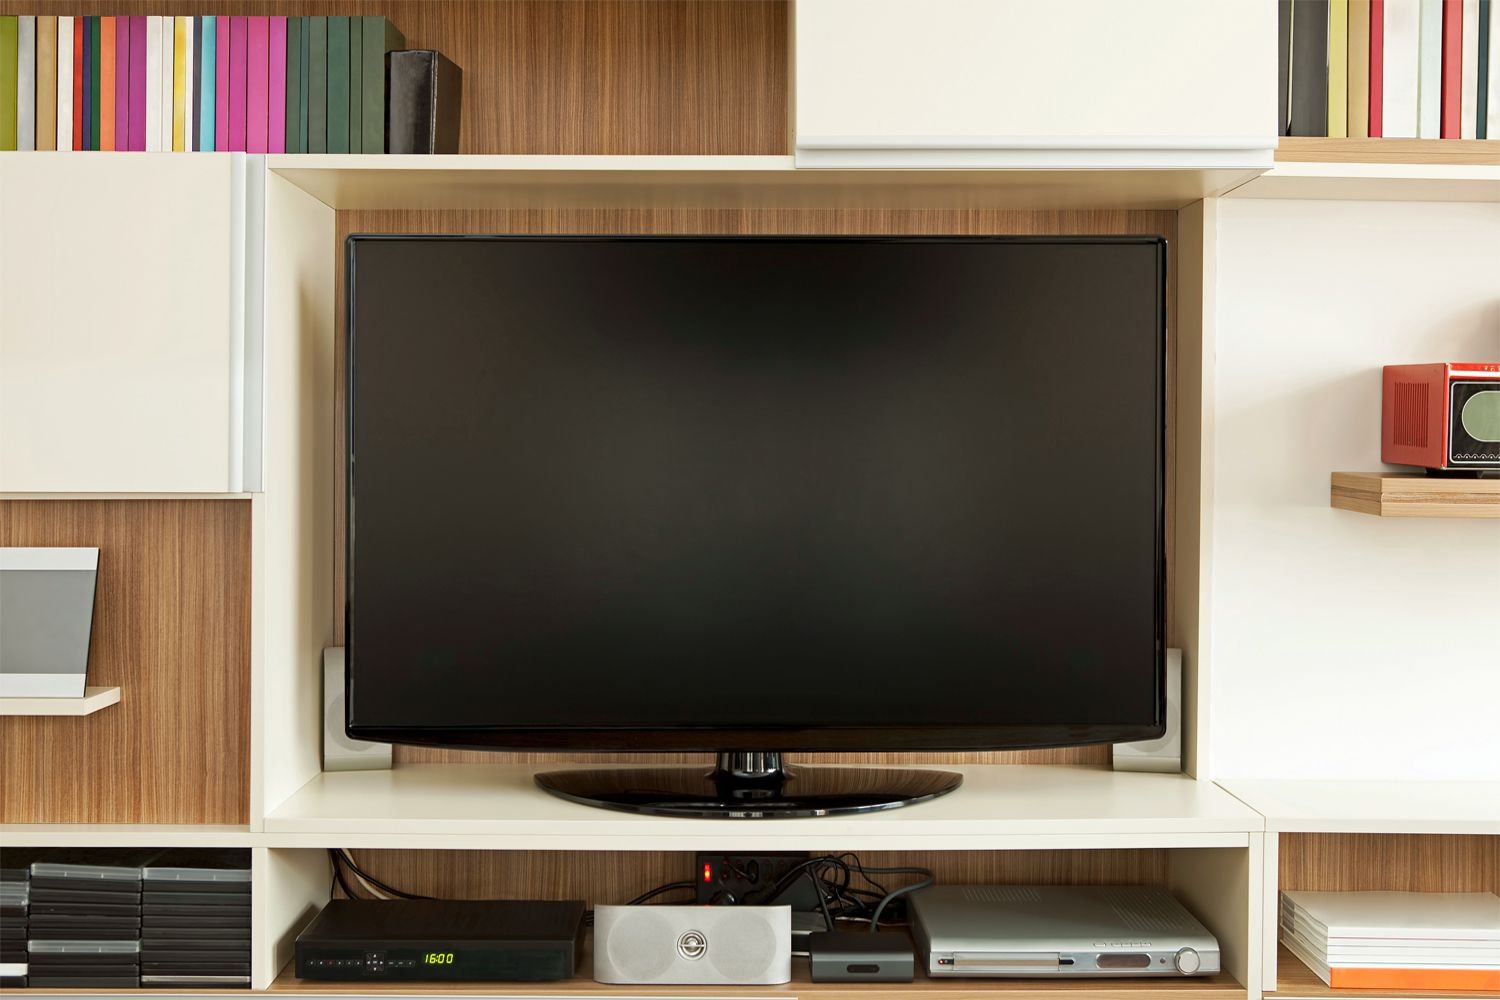 An LCD TV set in a wall unit